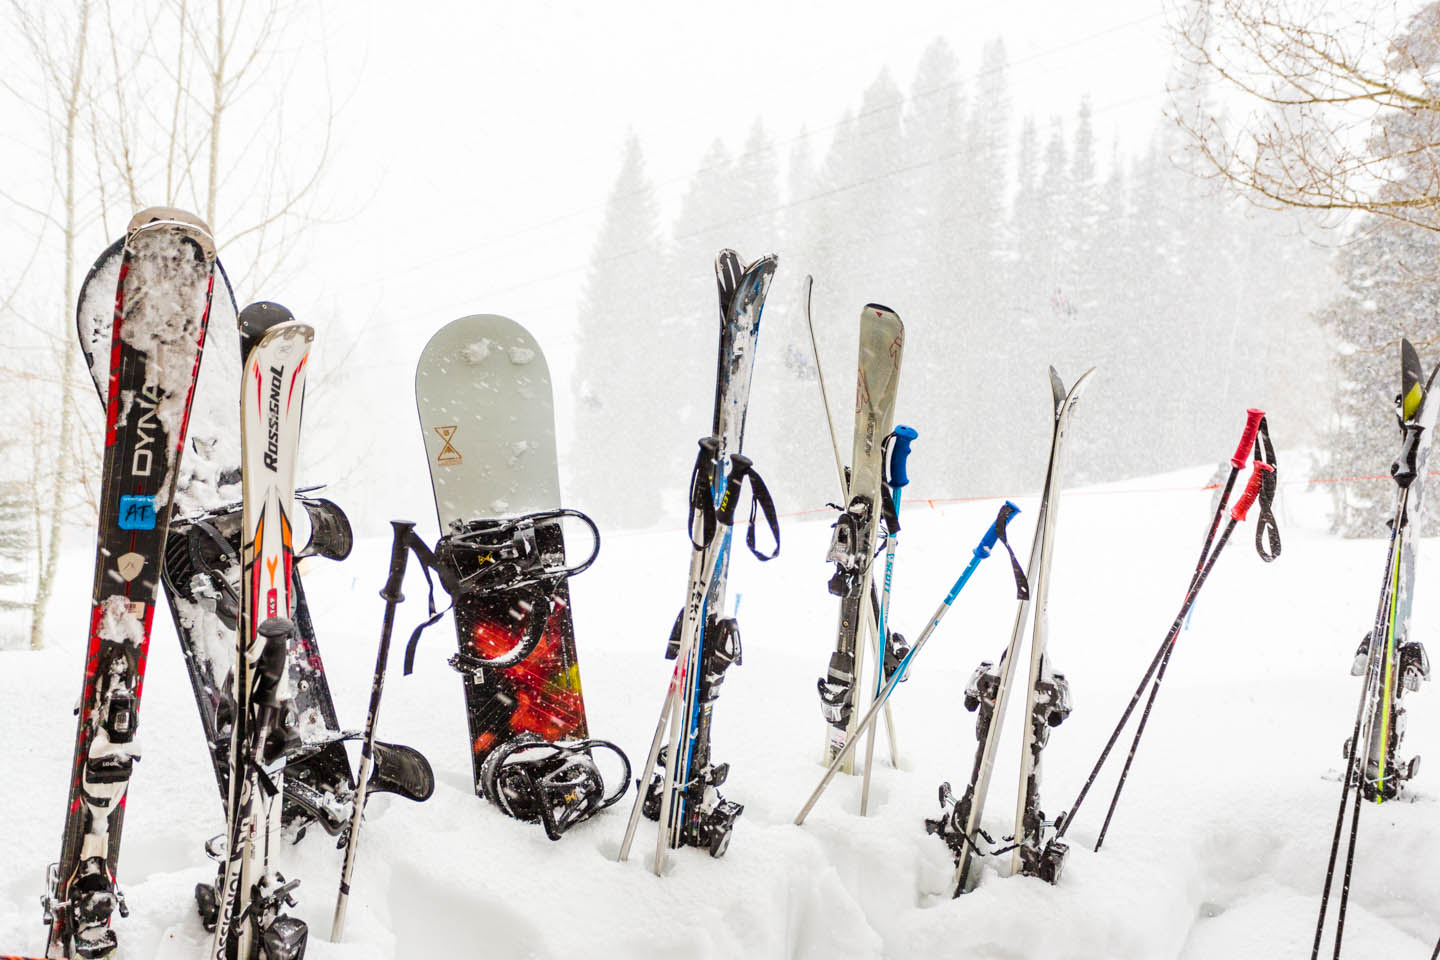 Snowboards & Skis at Snowbird Resort in Utah